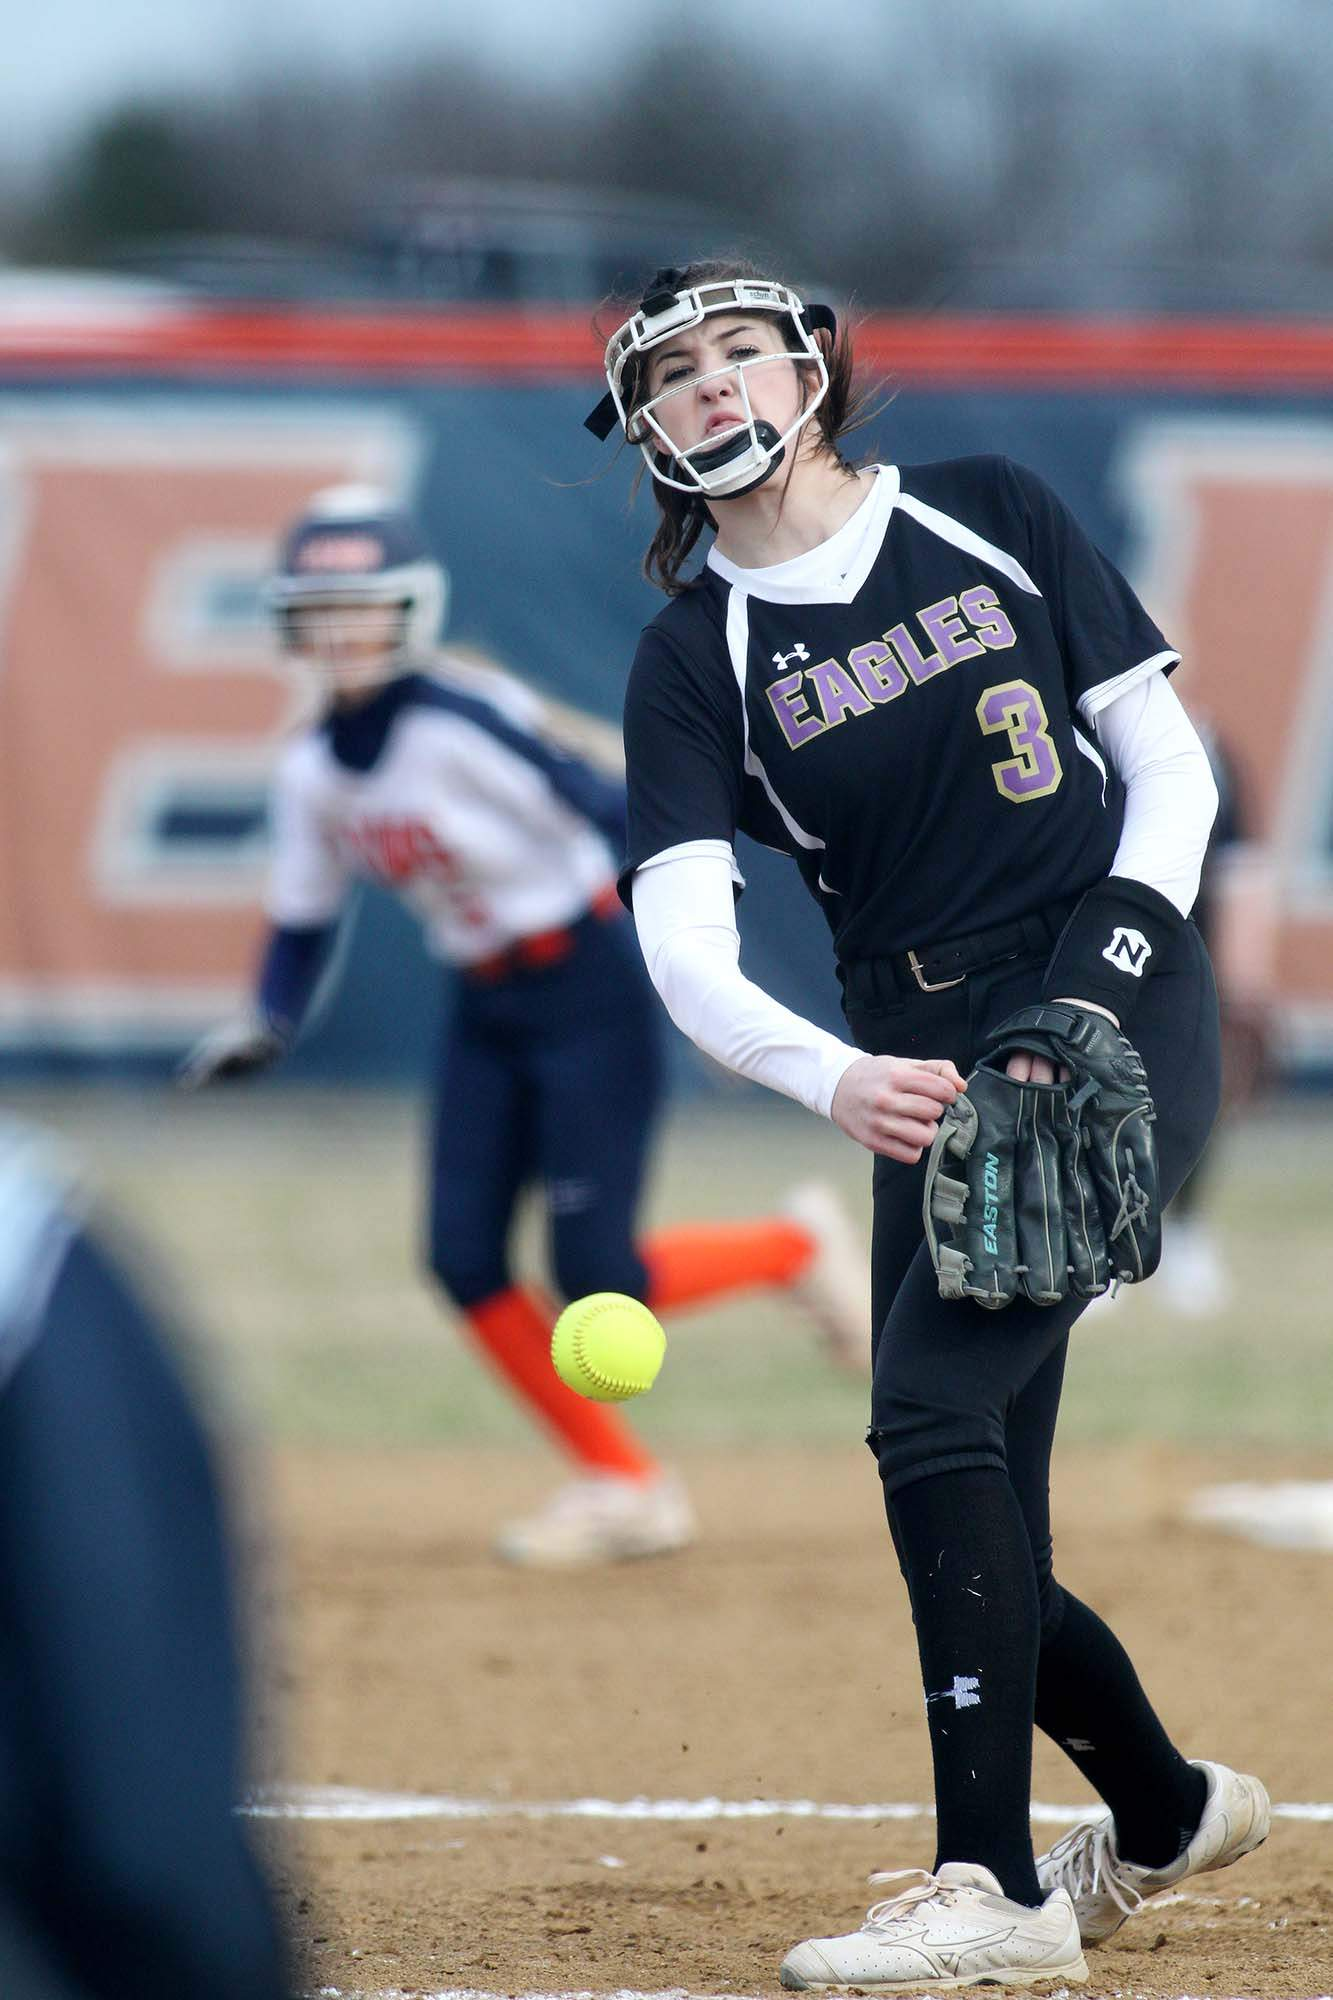 Emma Wargel struck out 11 in an 8-4 loss to Carterville.